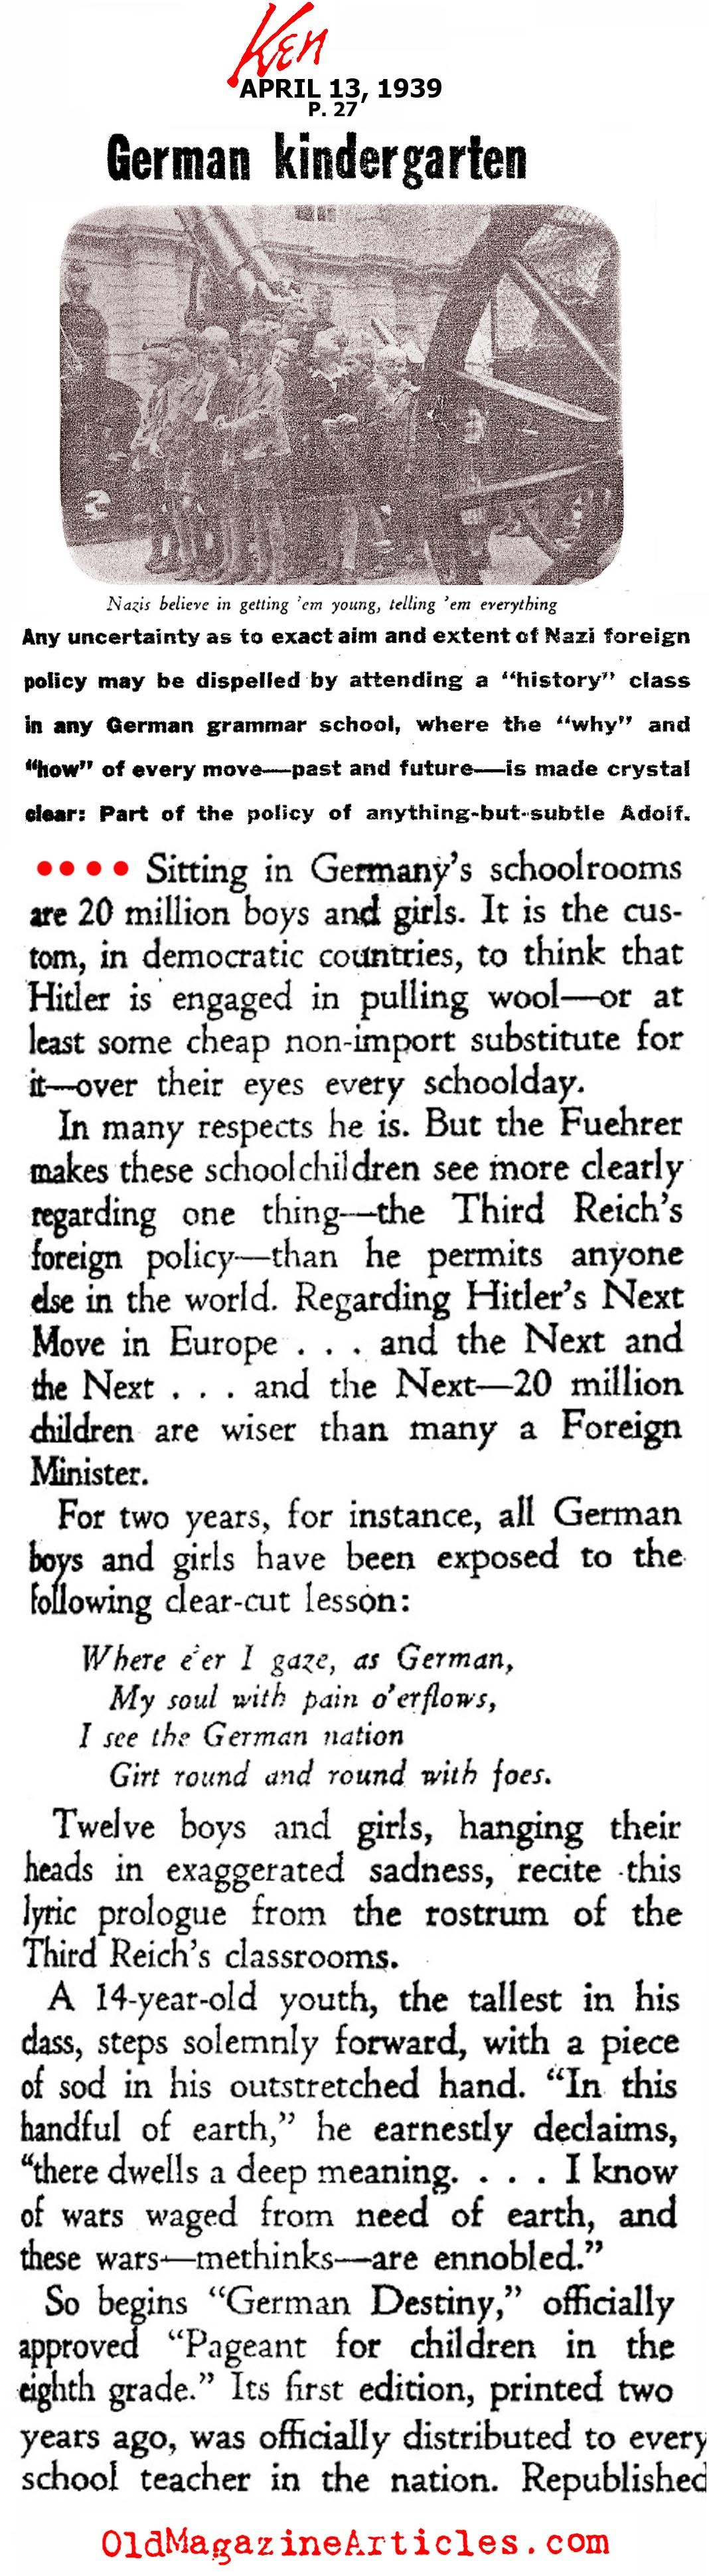 Nazi Indoctrination: the Eighth Grade  (Ken Magazine, 1939)